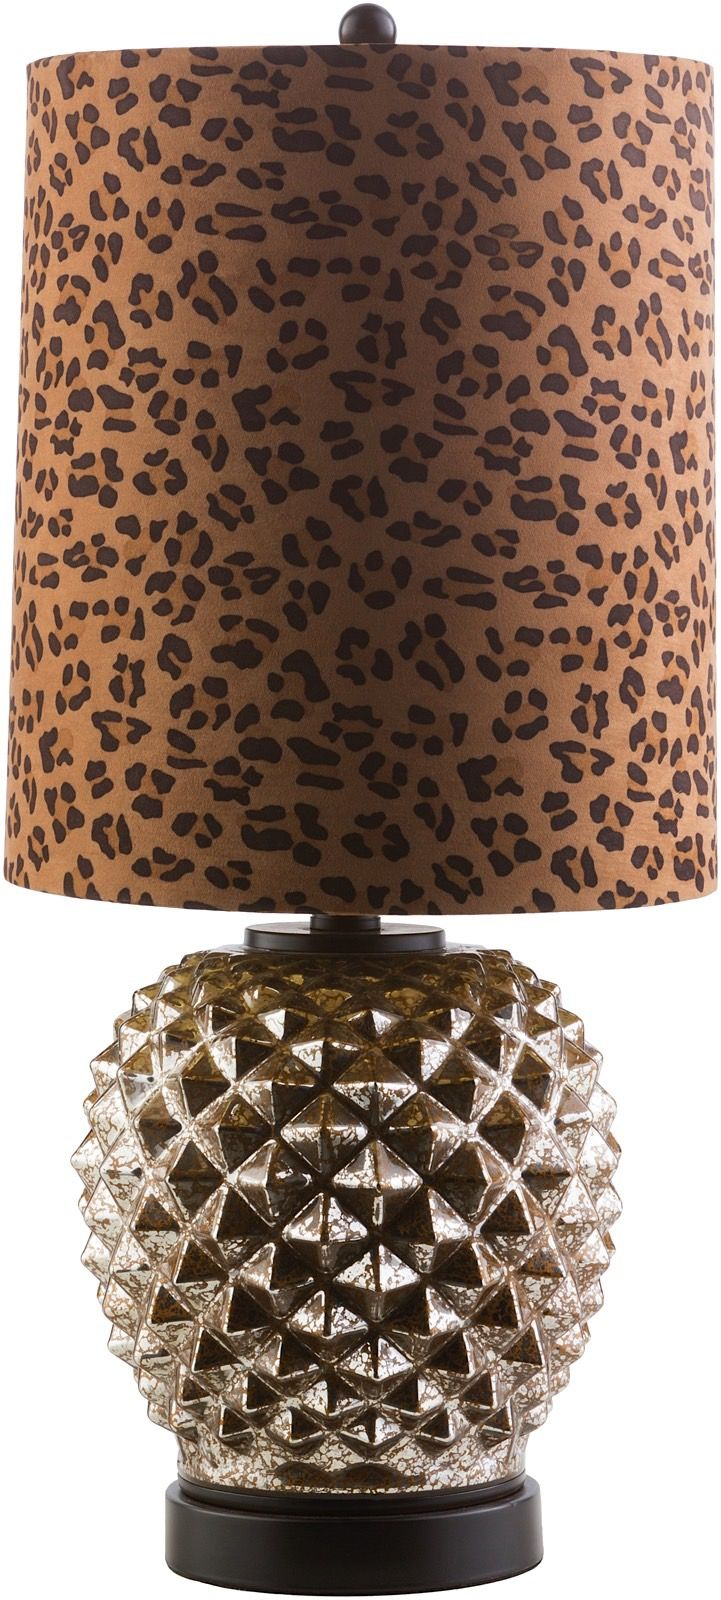 surya jezebel animal inspirations table lamp